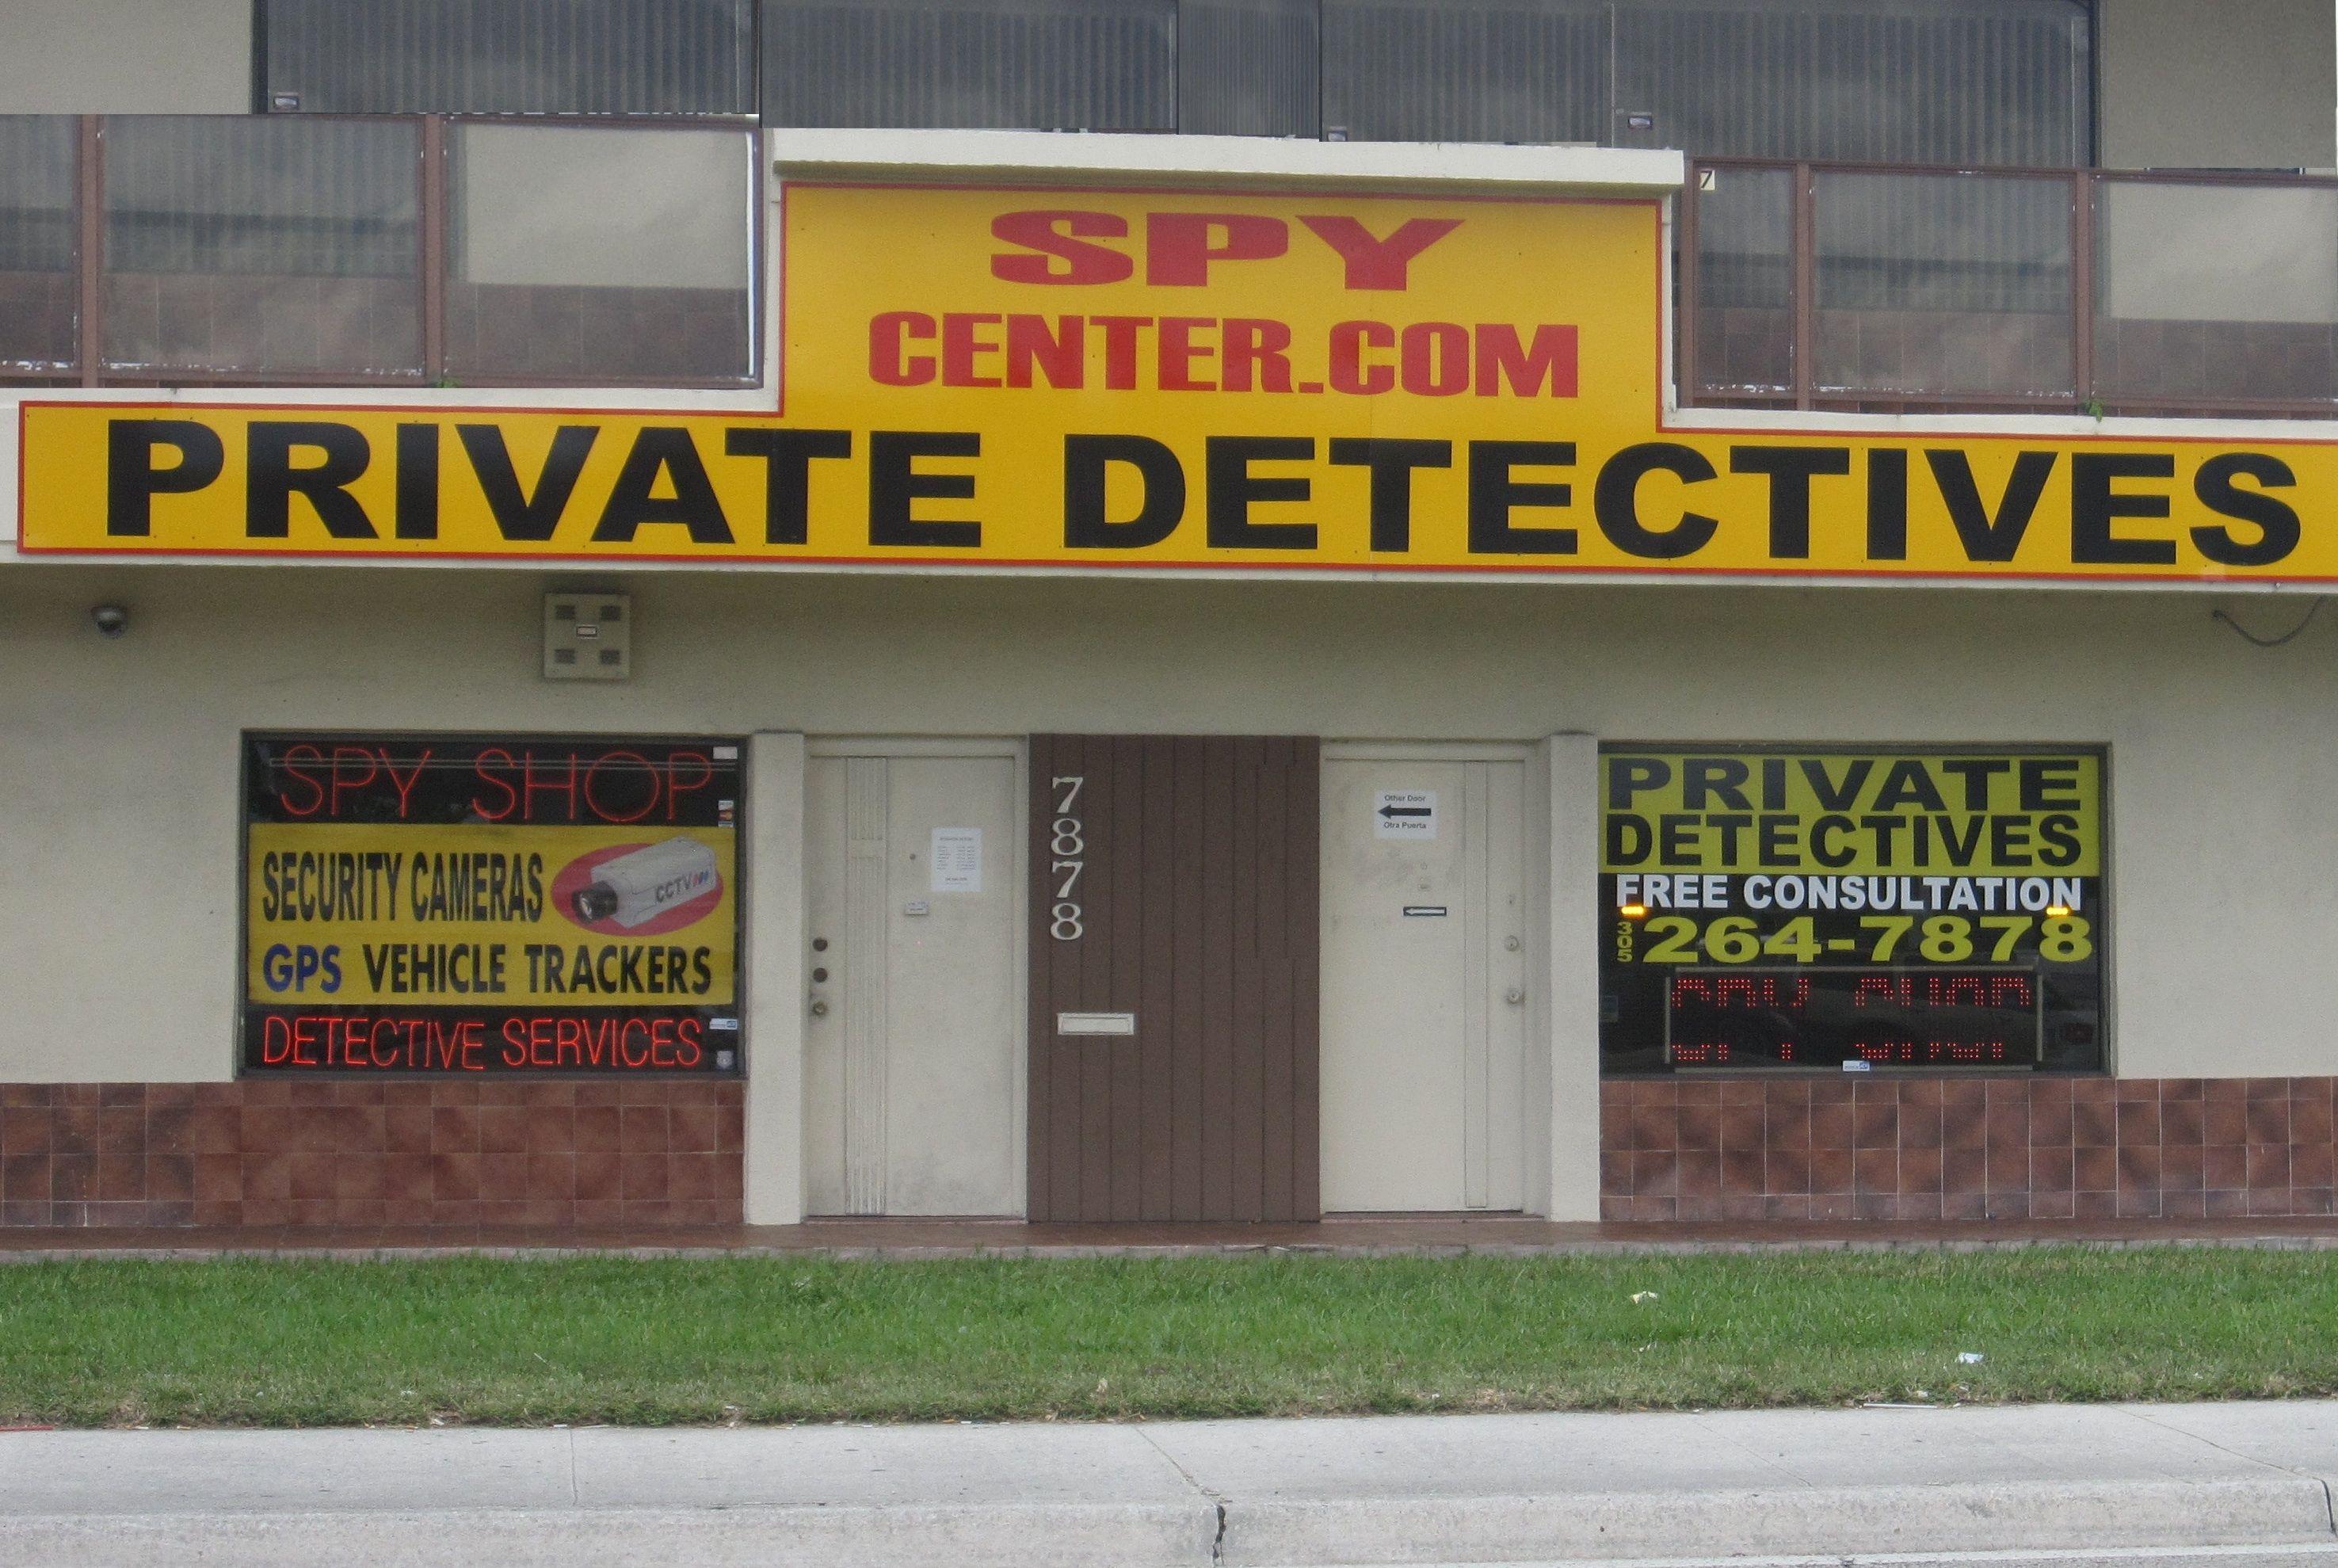 Miami Private Investigator. Side Effects Of Cisplatin Chemotherapy. Diabetic Weight Loss Programs. Small Business Workshops Aero Carpet Cleaning. Human Anatomy And Physiology I Online Course. Discovering Geometry Teaching And Worksheet Masters. Online Websites Shopping Automated Voice Mail. Gartner Data Center Magic Quadrant. Alarm Monitoring Phoenix Union Bank Refinance